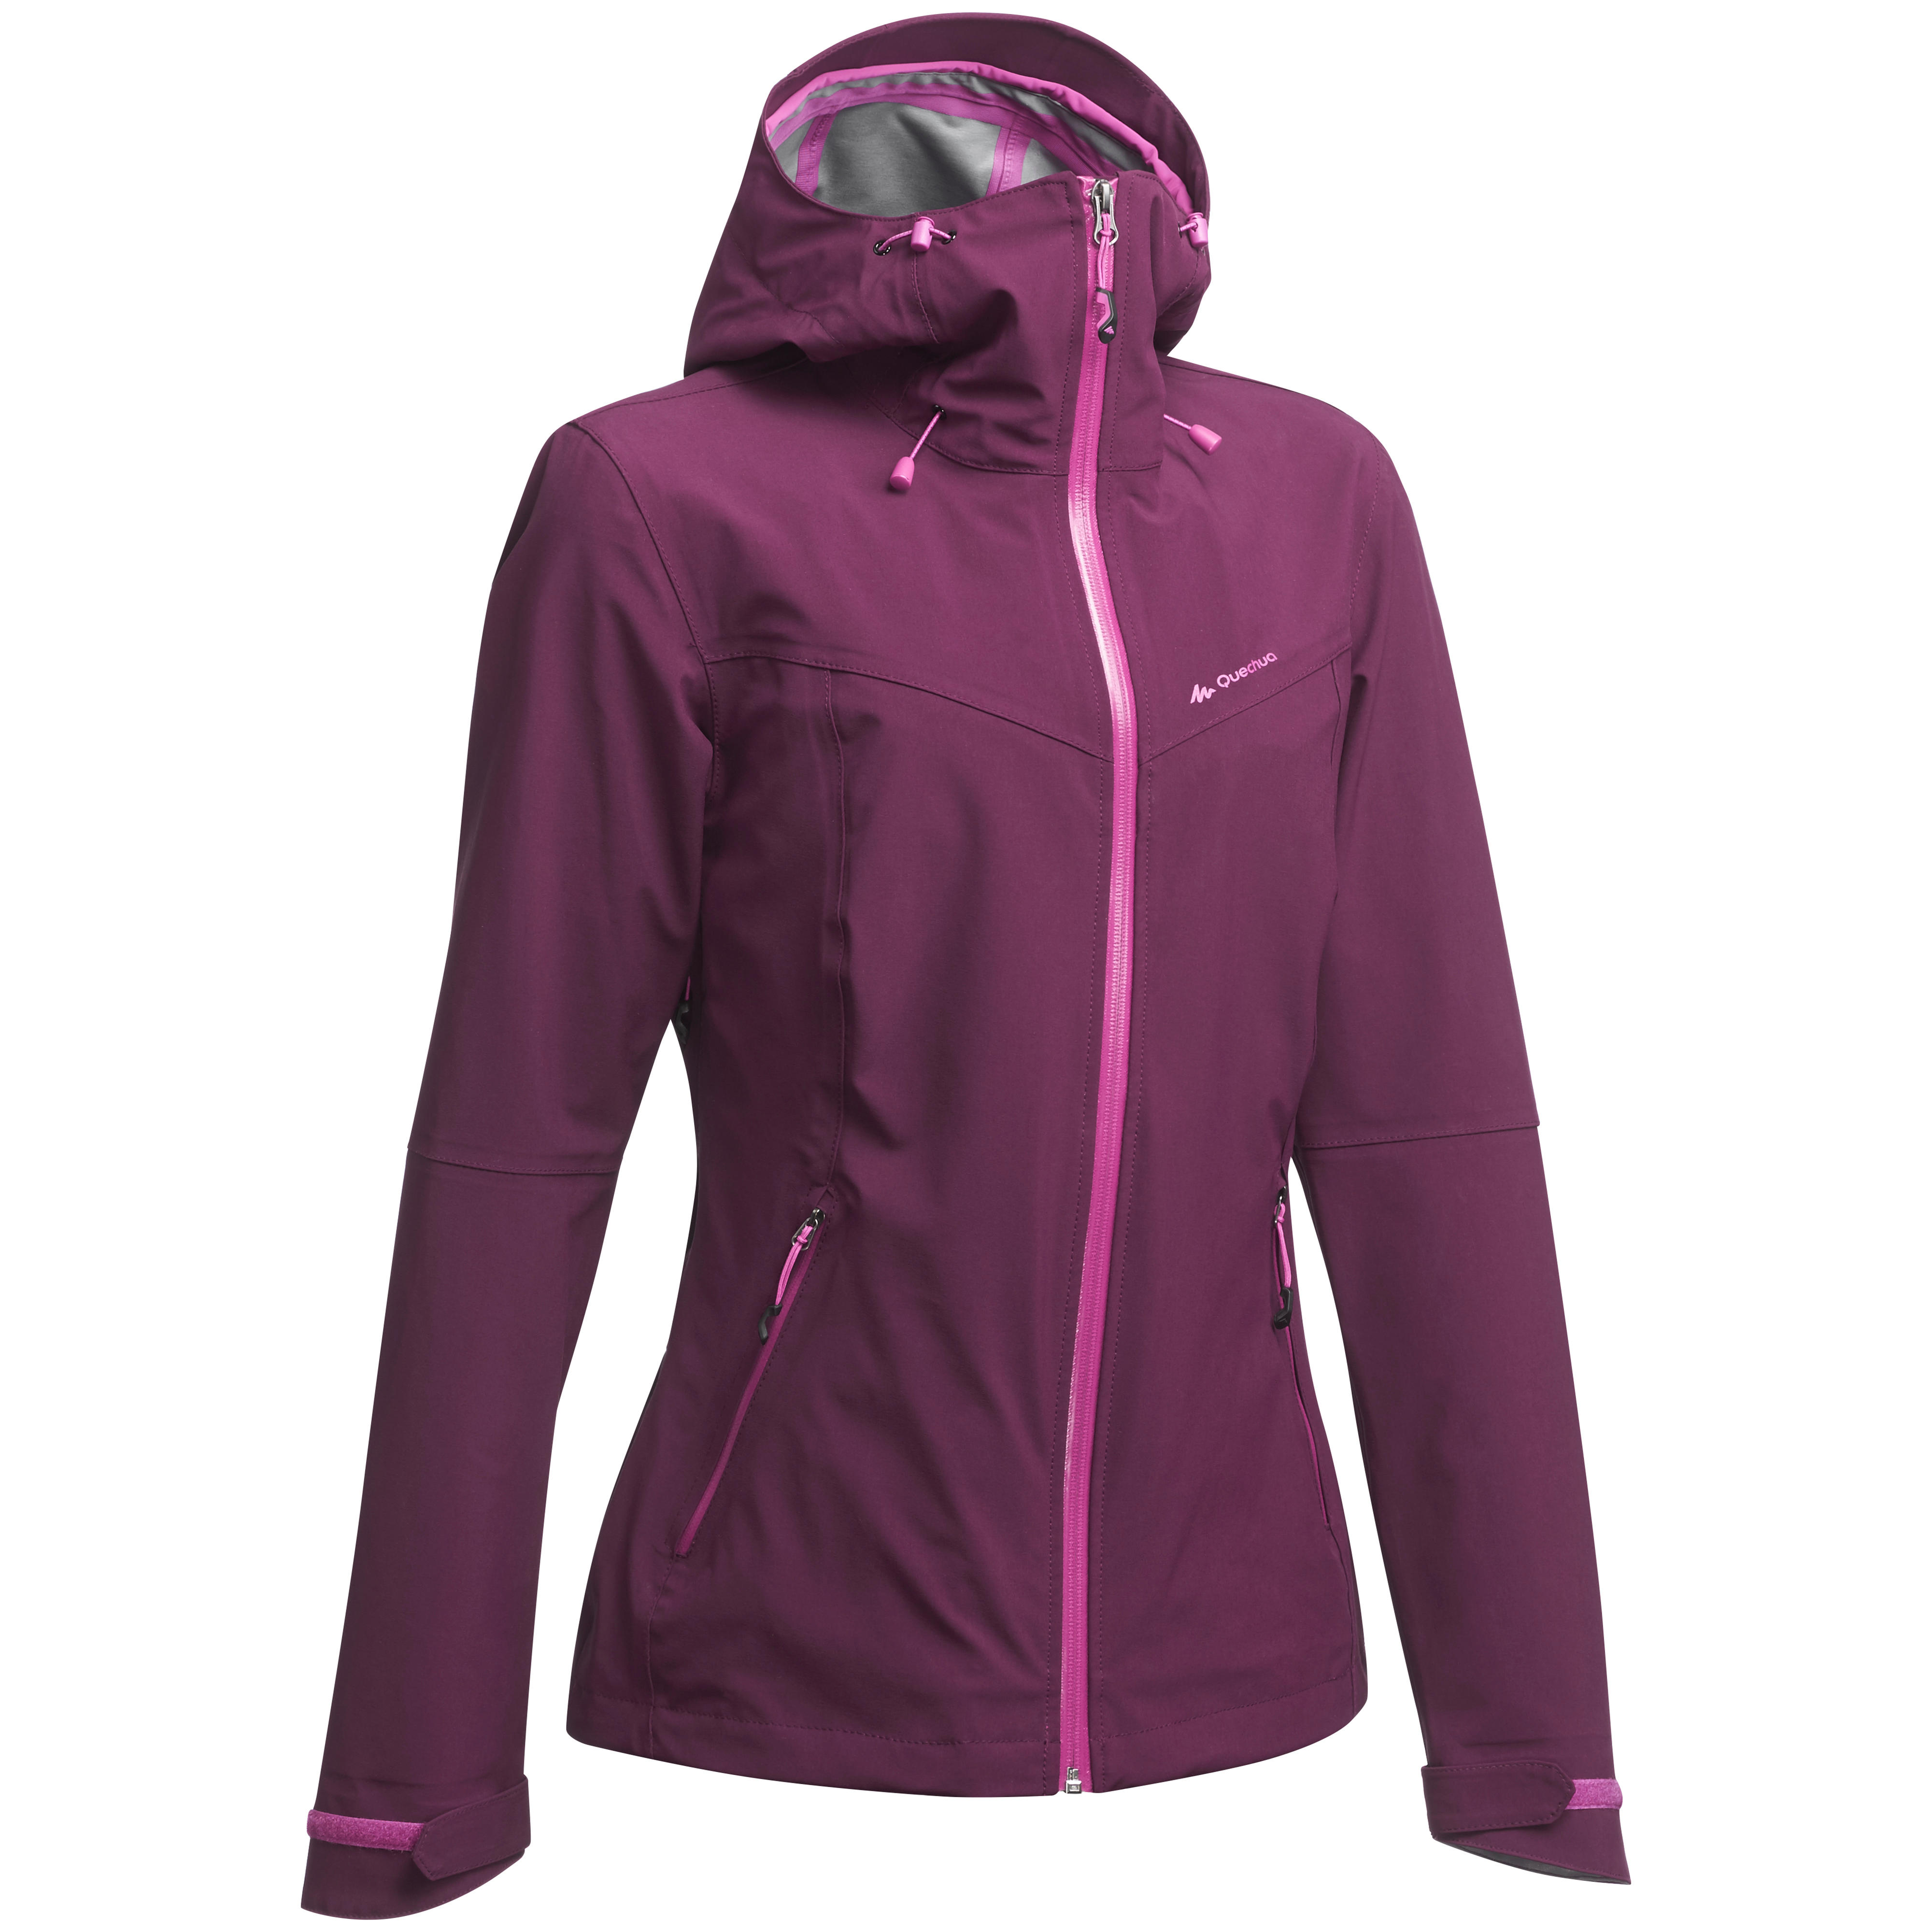 Women's Waterproof Mountain Hiking Rain Jacket – Plum